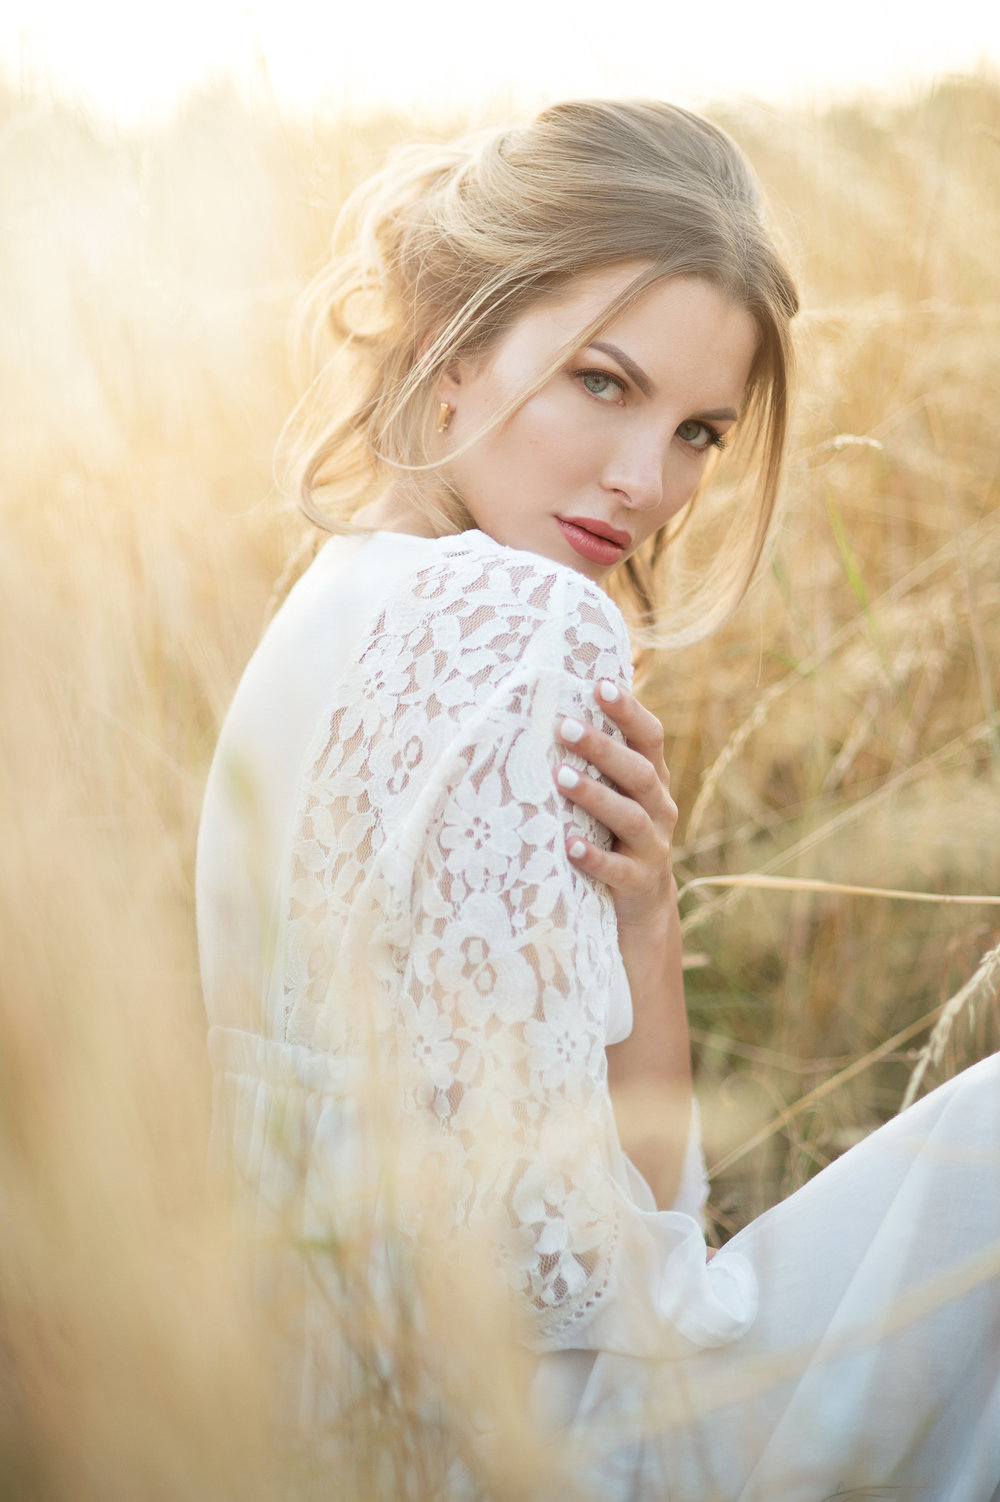 Naturelle Look Photography - Styledshoot Sunset a001 Haze.jpg